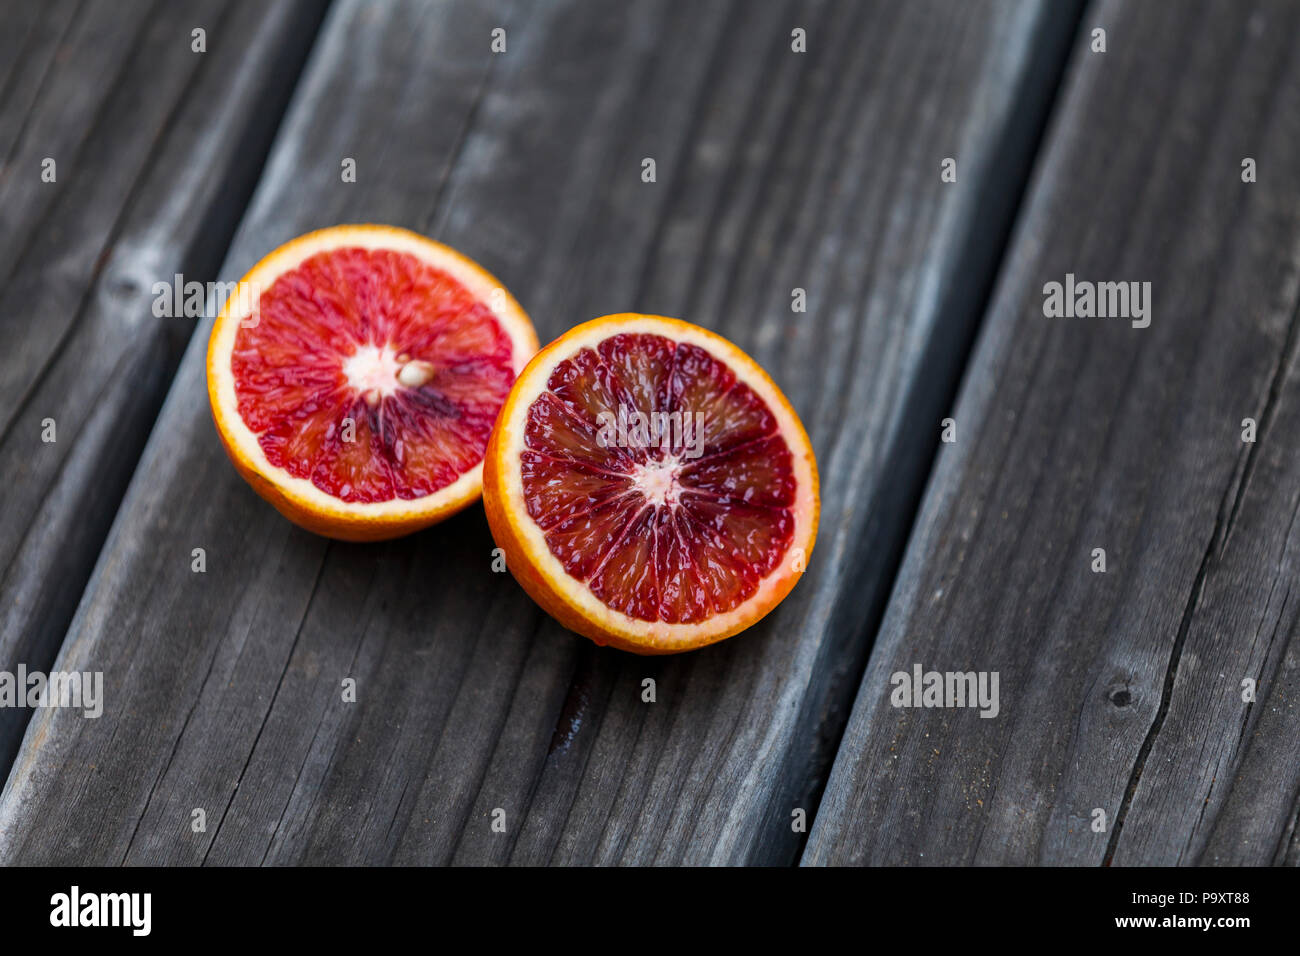 Healthy blood oranges on display. - Stock Image